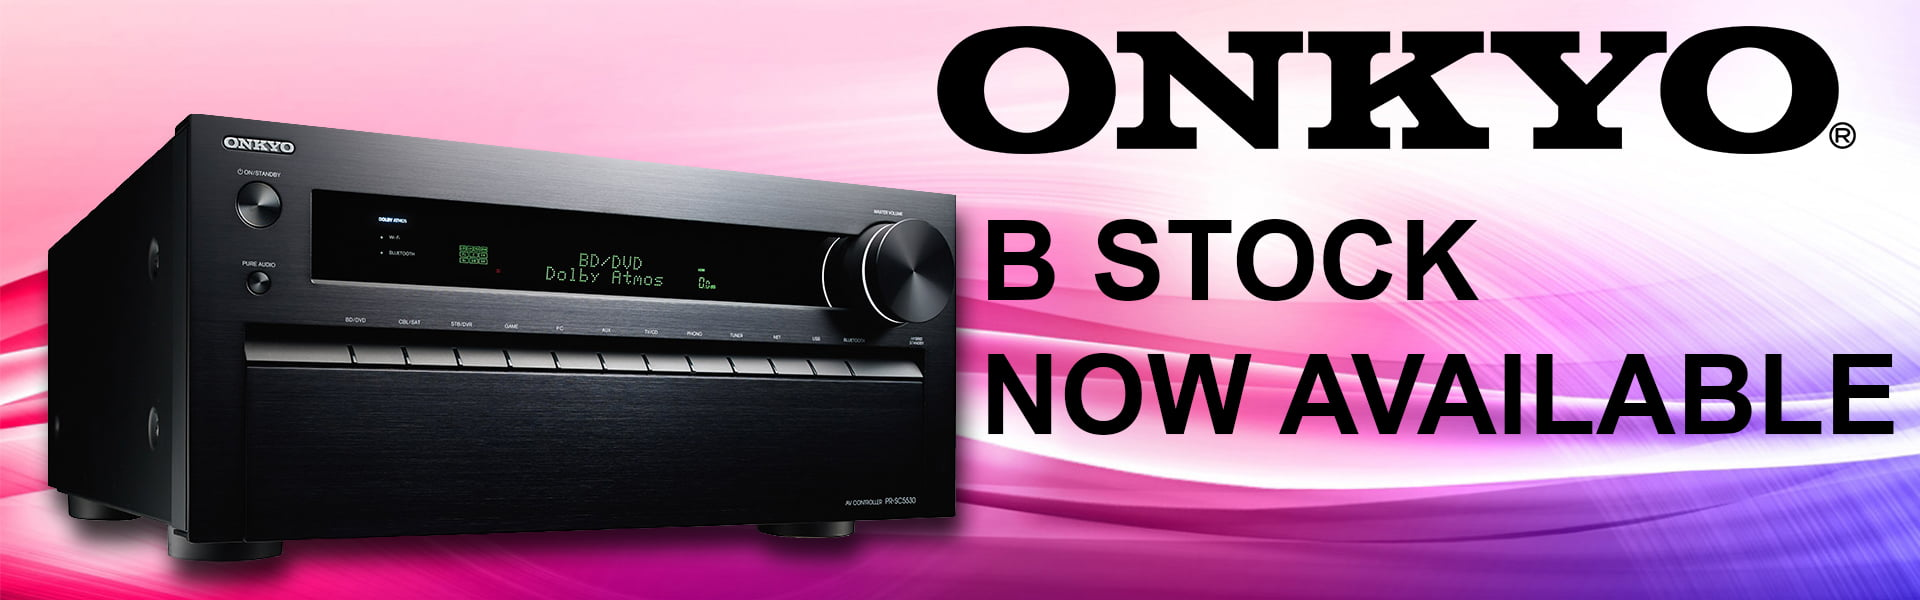 Onkyo B Stock now available